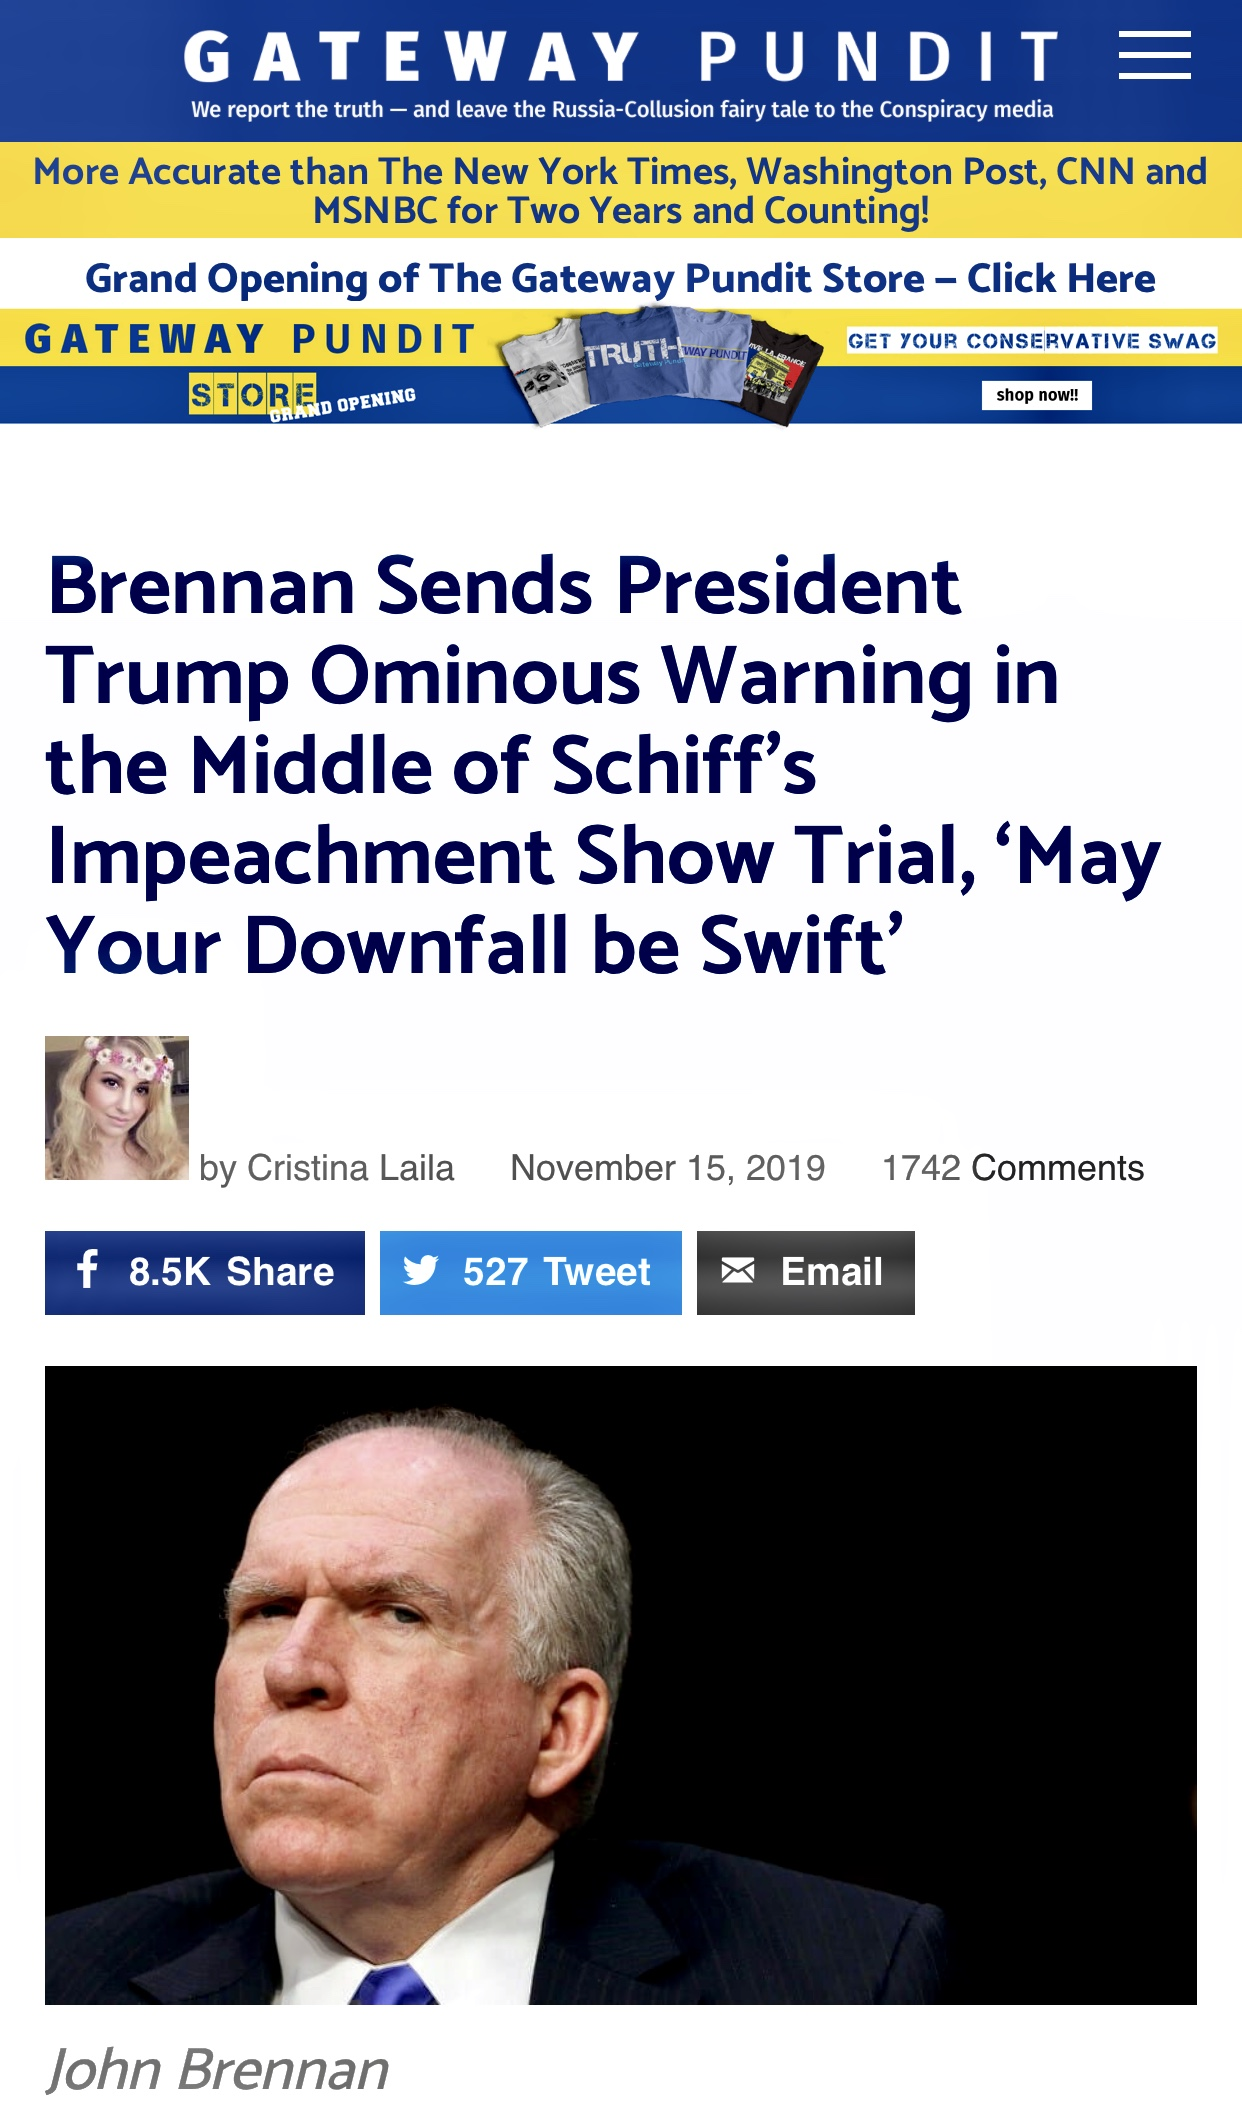 Brennan Sends President Trump Ominous Warning (Threat)